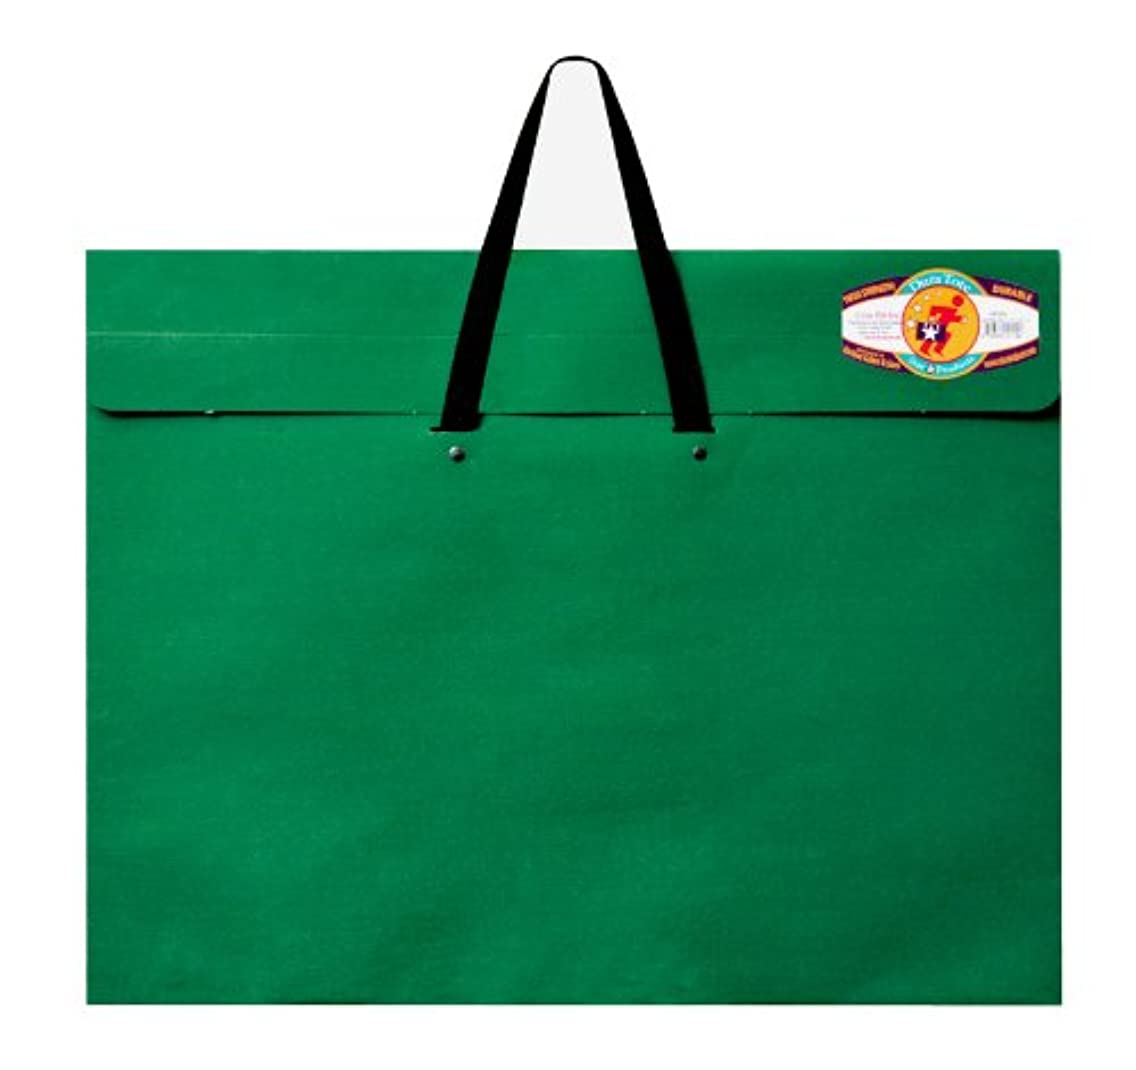 Star Products Classic Dura-Tote Portfolio 20-Inch by 26-Inch, Green with Reclosable Fastener